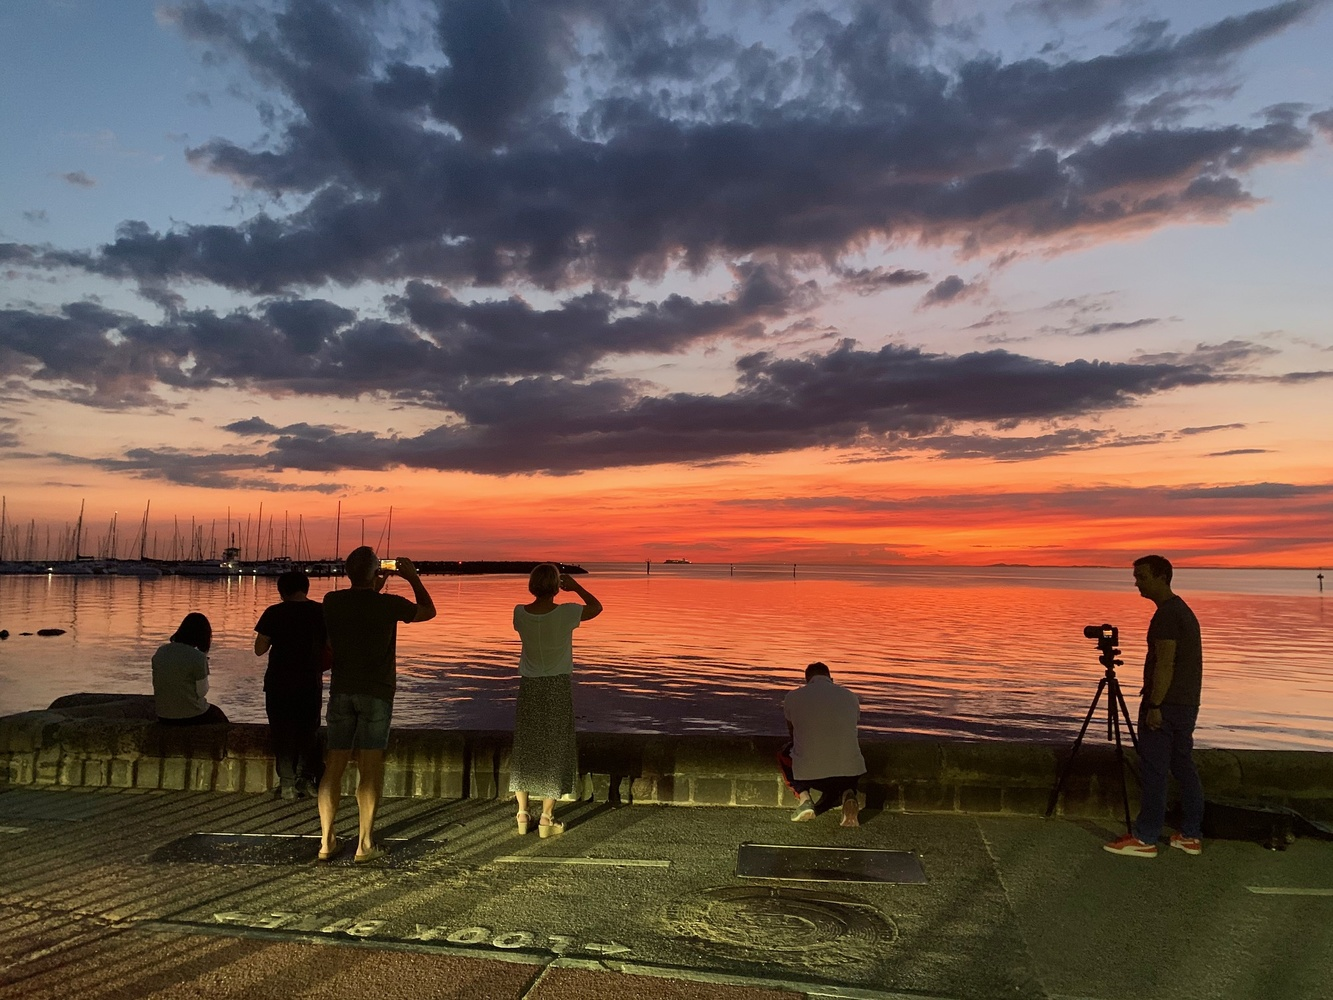 Bayside sunset in Melbourne by Marian Pollock